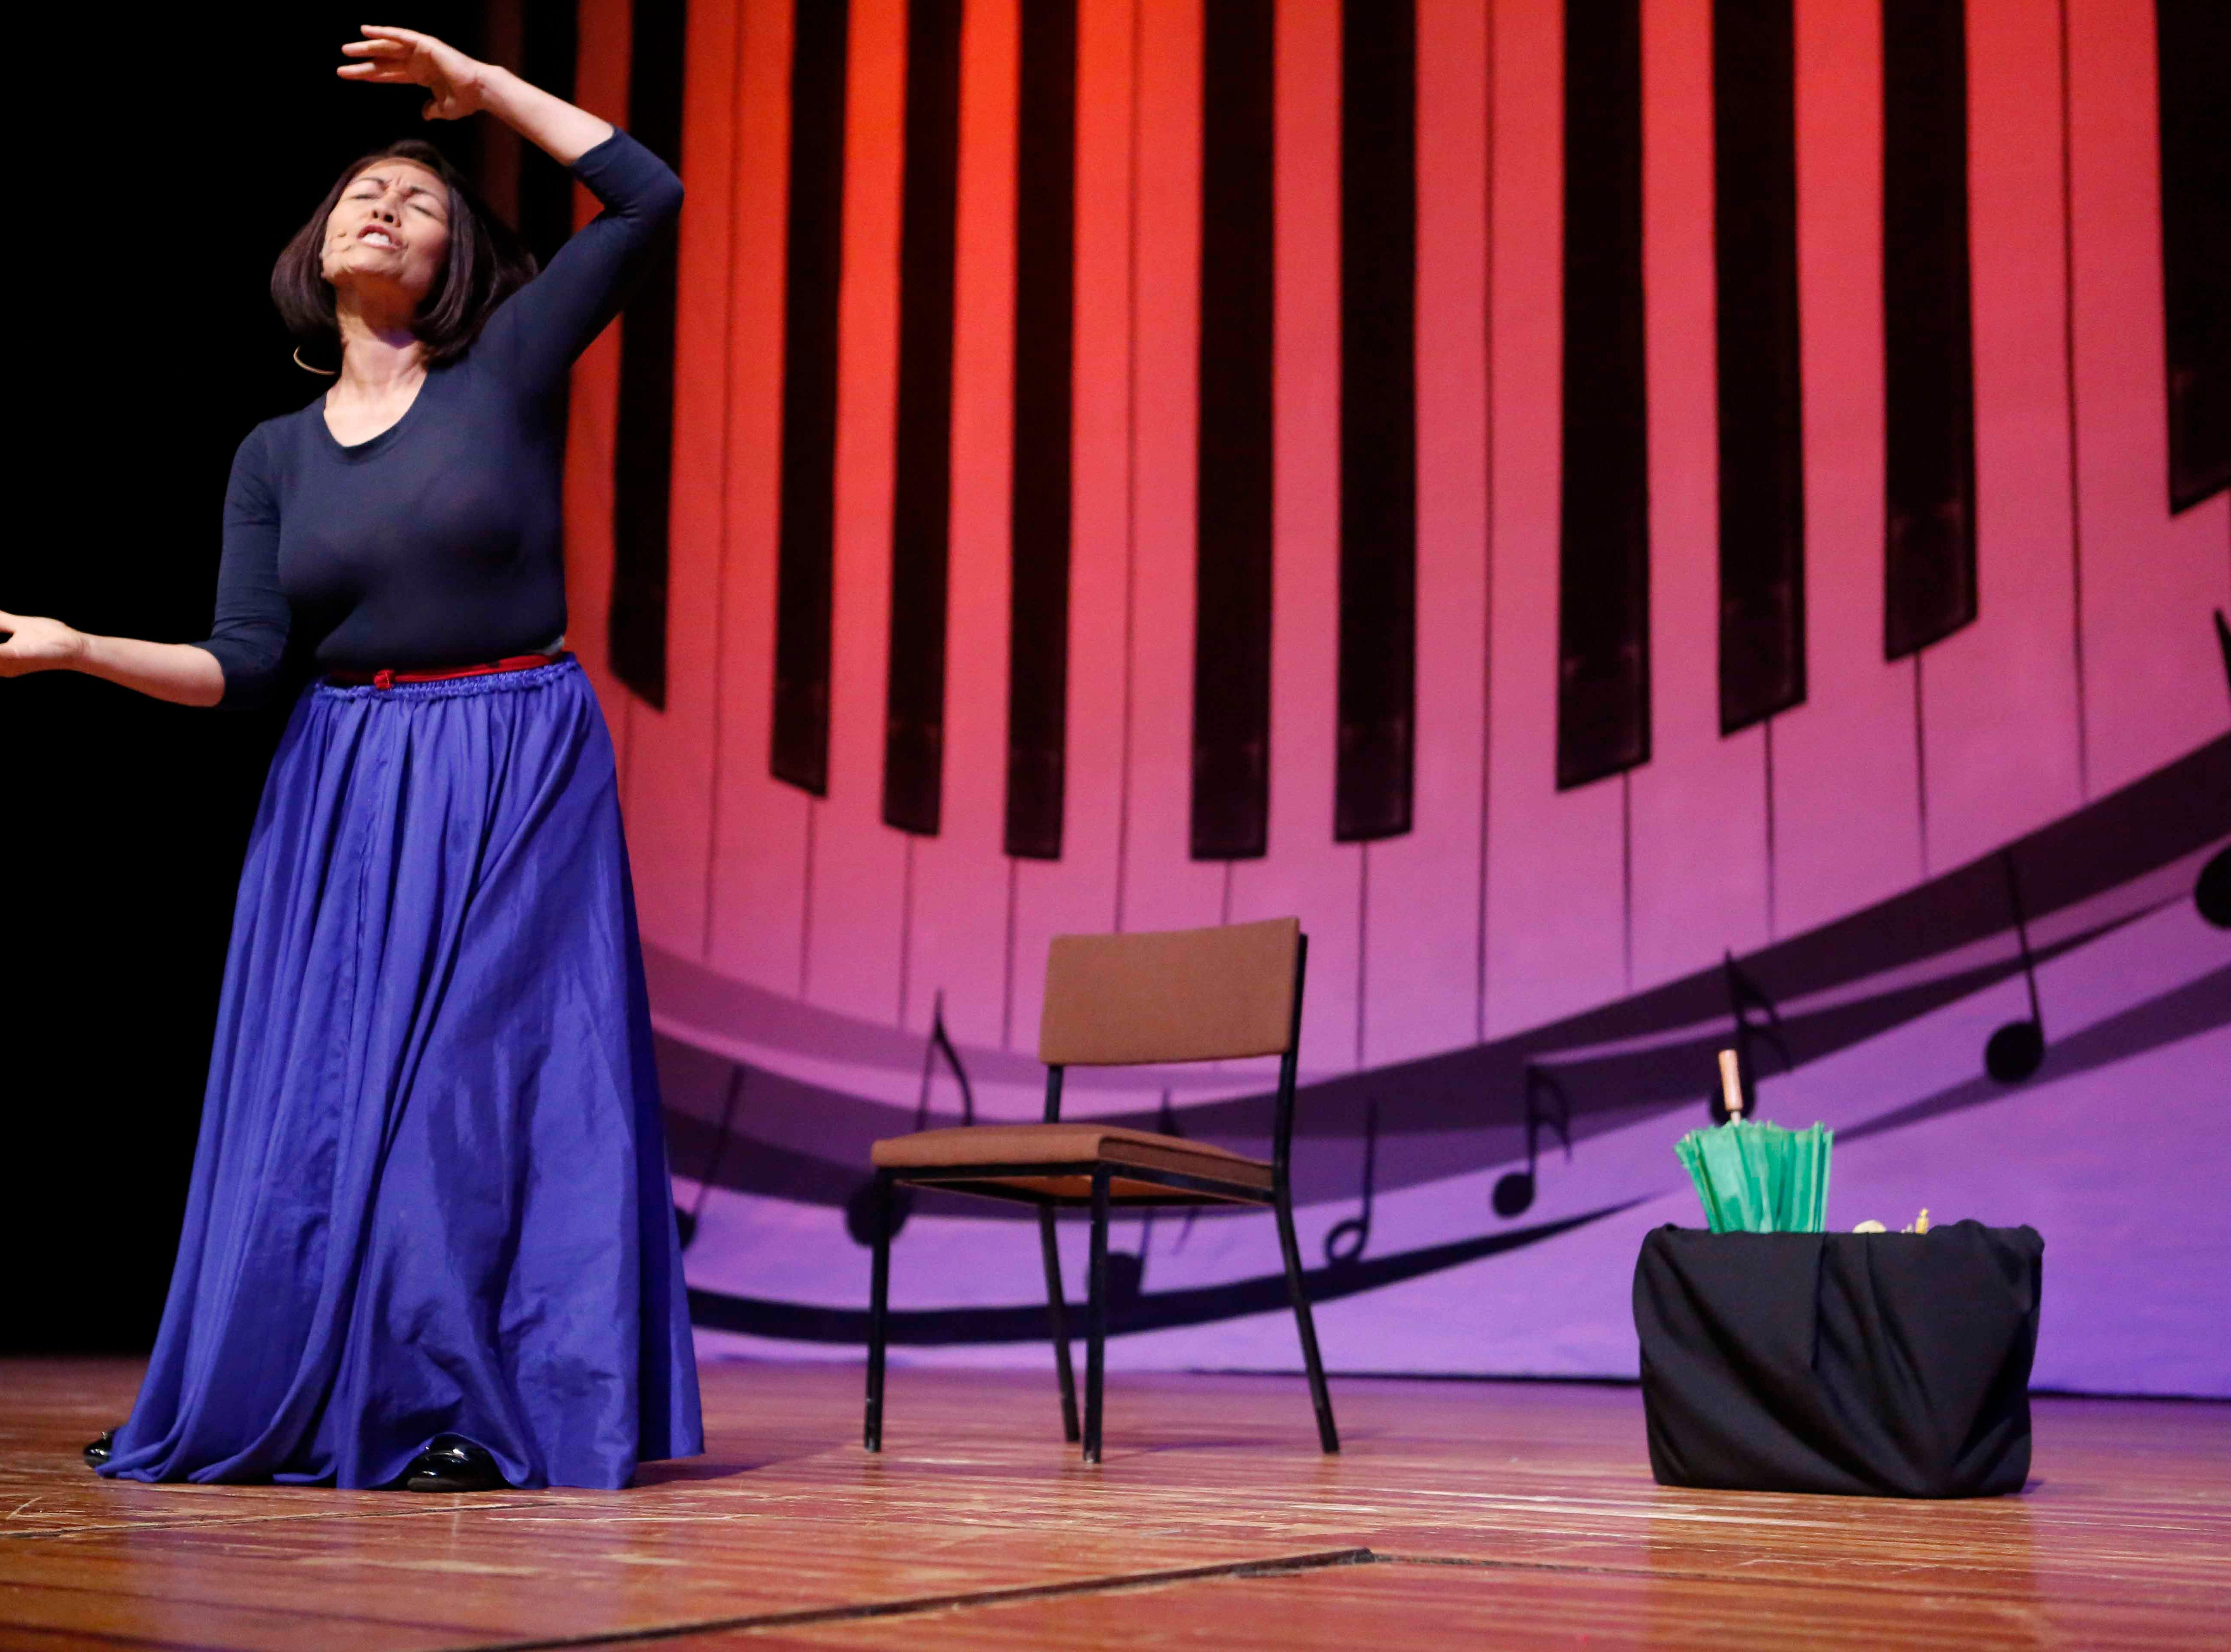 Umbelina Martinez performs a dramatic act during the 12th annual Noche Bohemia at Sherwood Hall on Saturday, April 27, 2019 in Salinas, Calif.